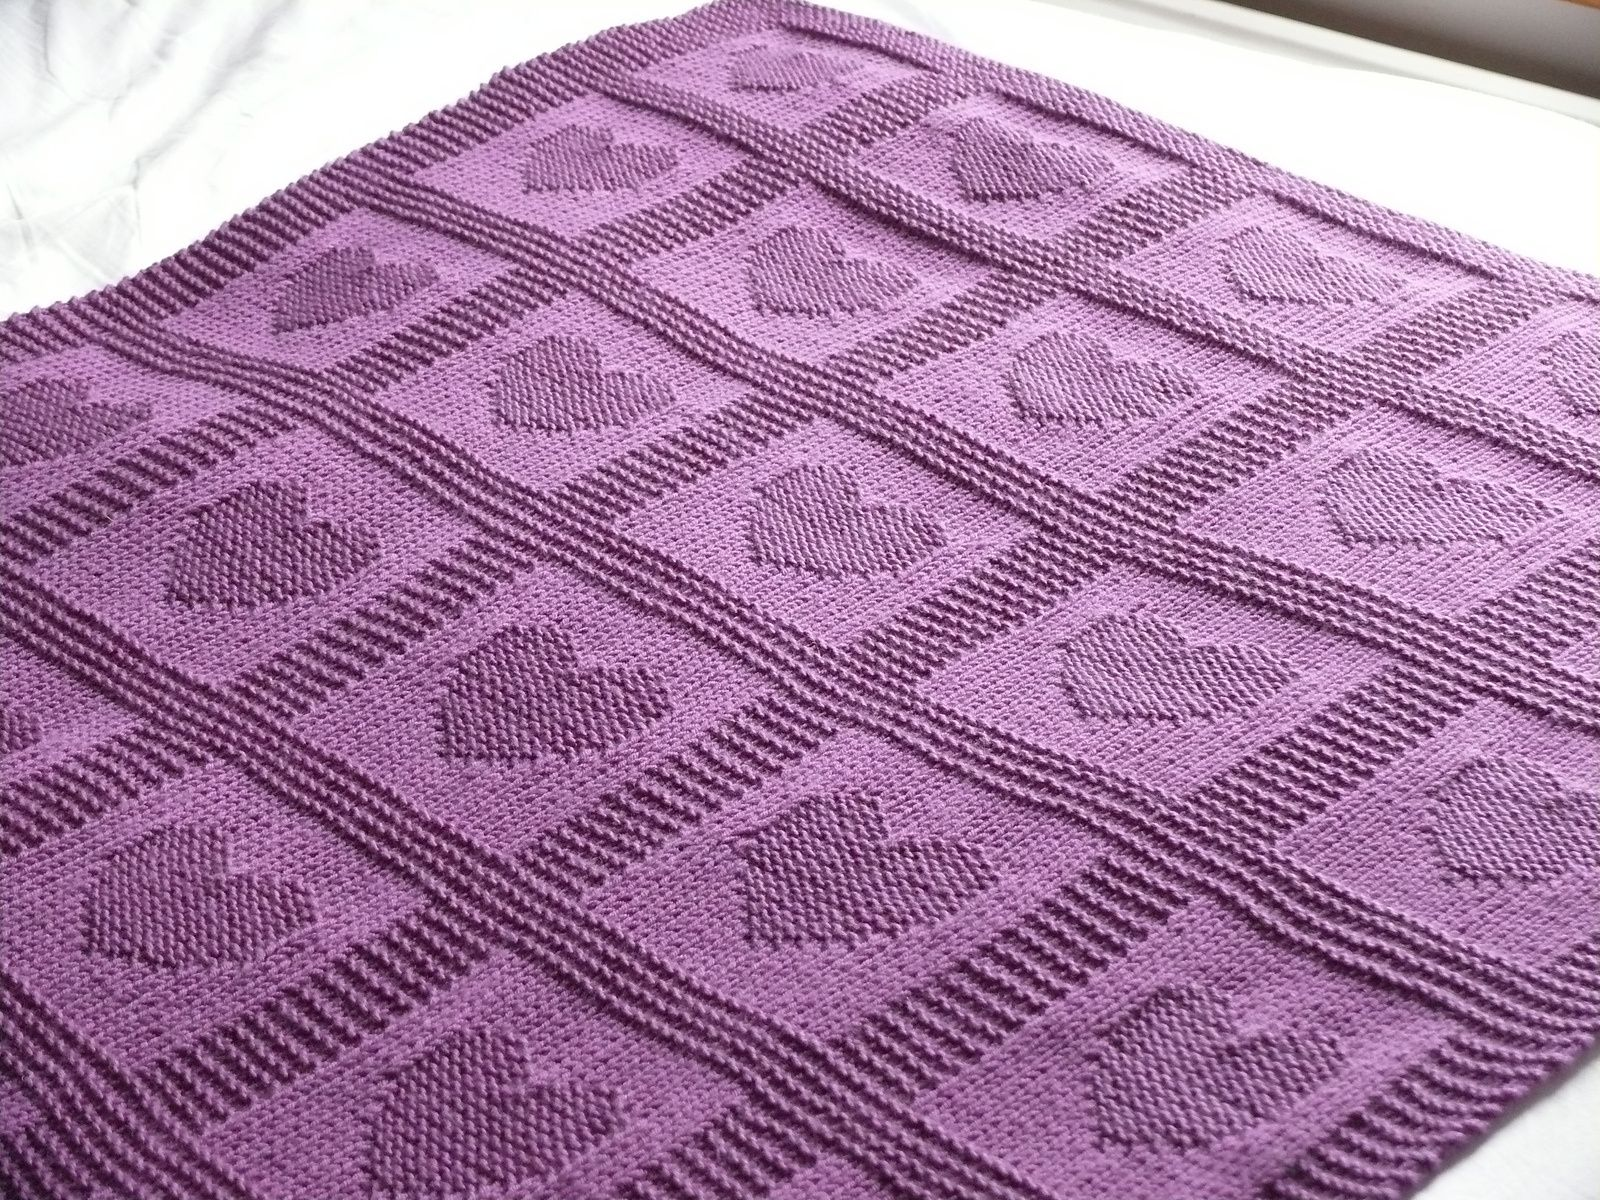 Knitting pattern for heart baby blanket crocheting quilting heart baby blanket by ann saglimbene free knitted pattern ravelry bankloansurffo Images